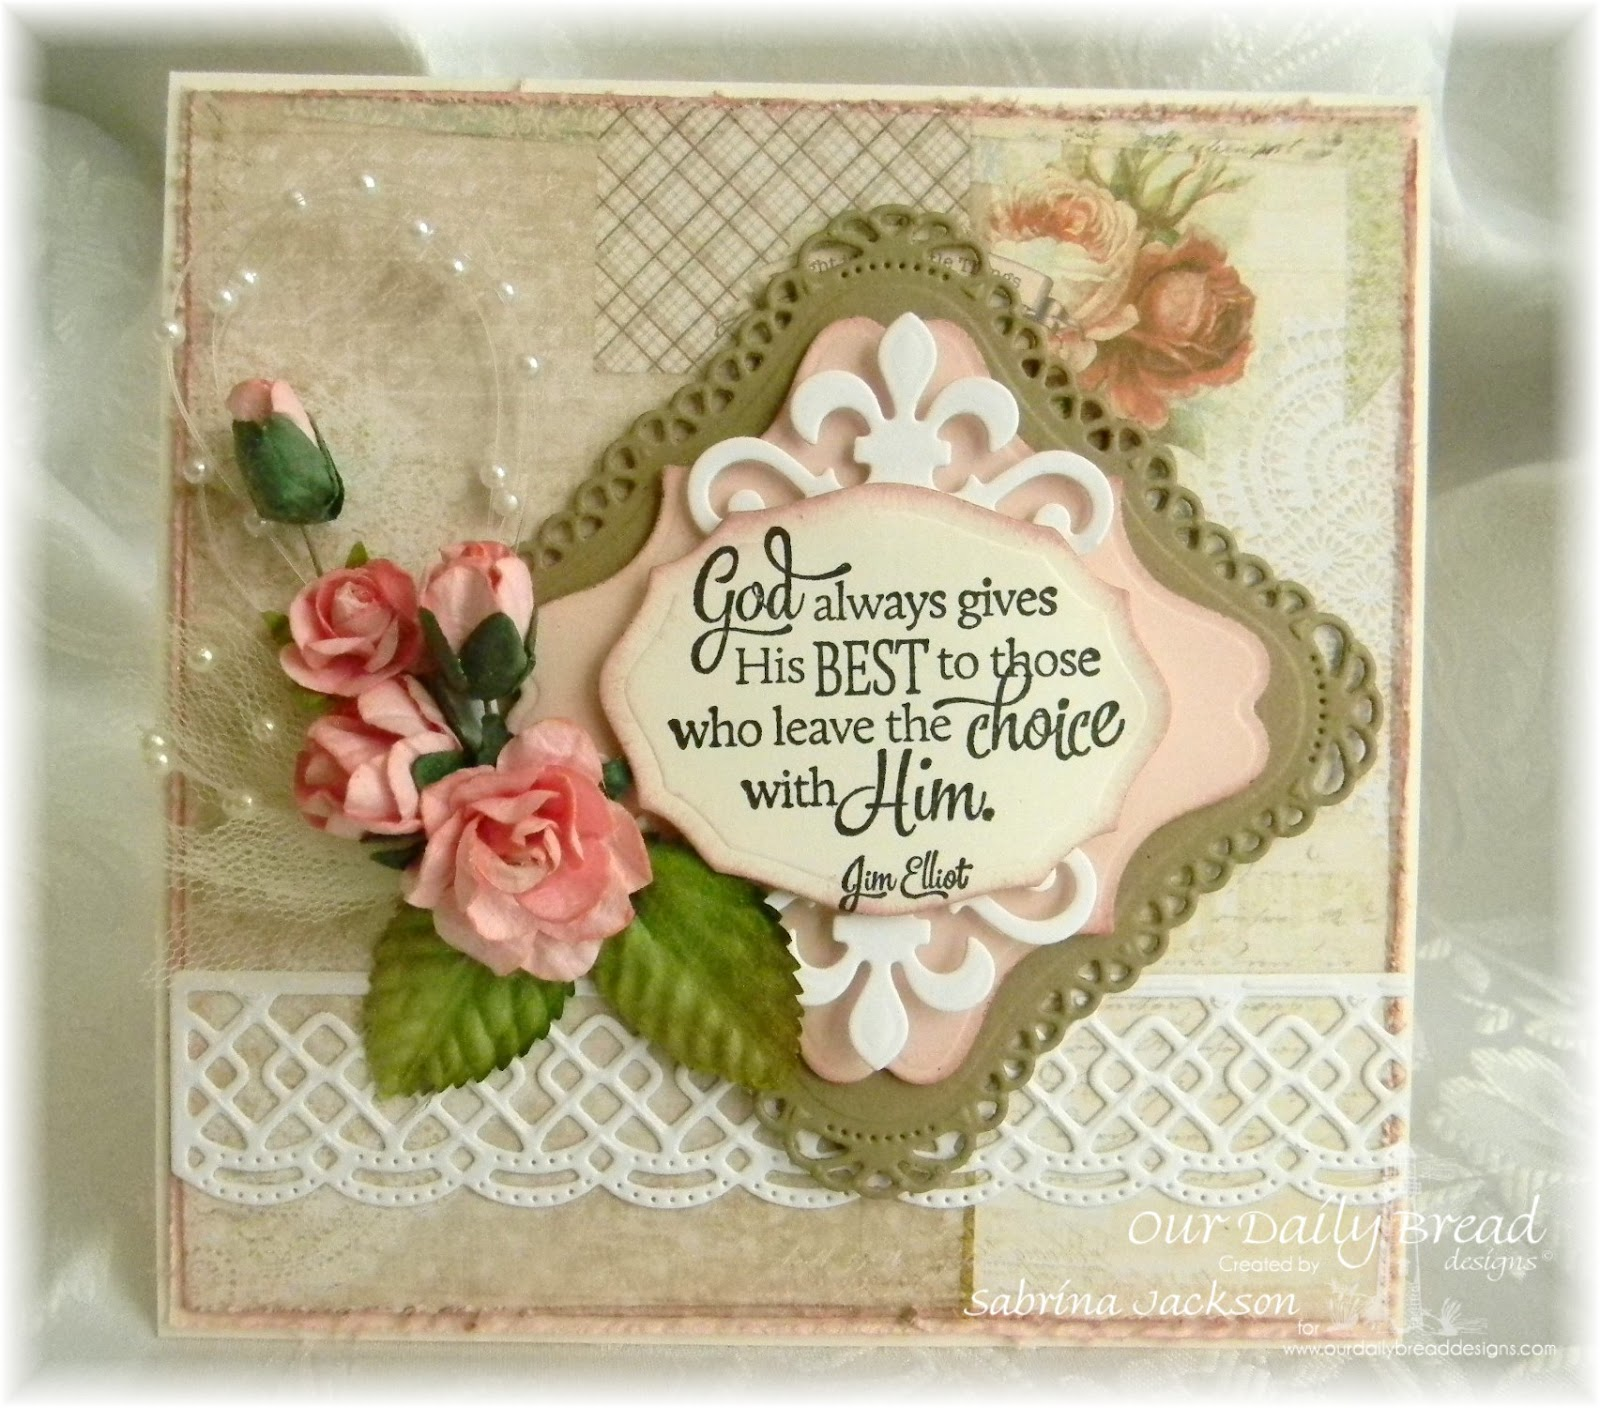 Stamps - Our Daily Bread Designs Quote Collection 4, ODBD Custom Beautiful Borders Dies, ODBD Elegant Oval Dies